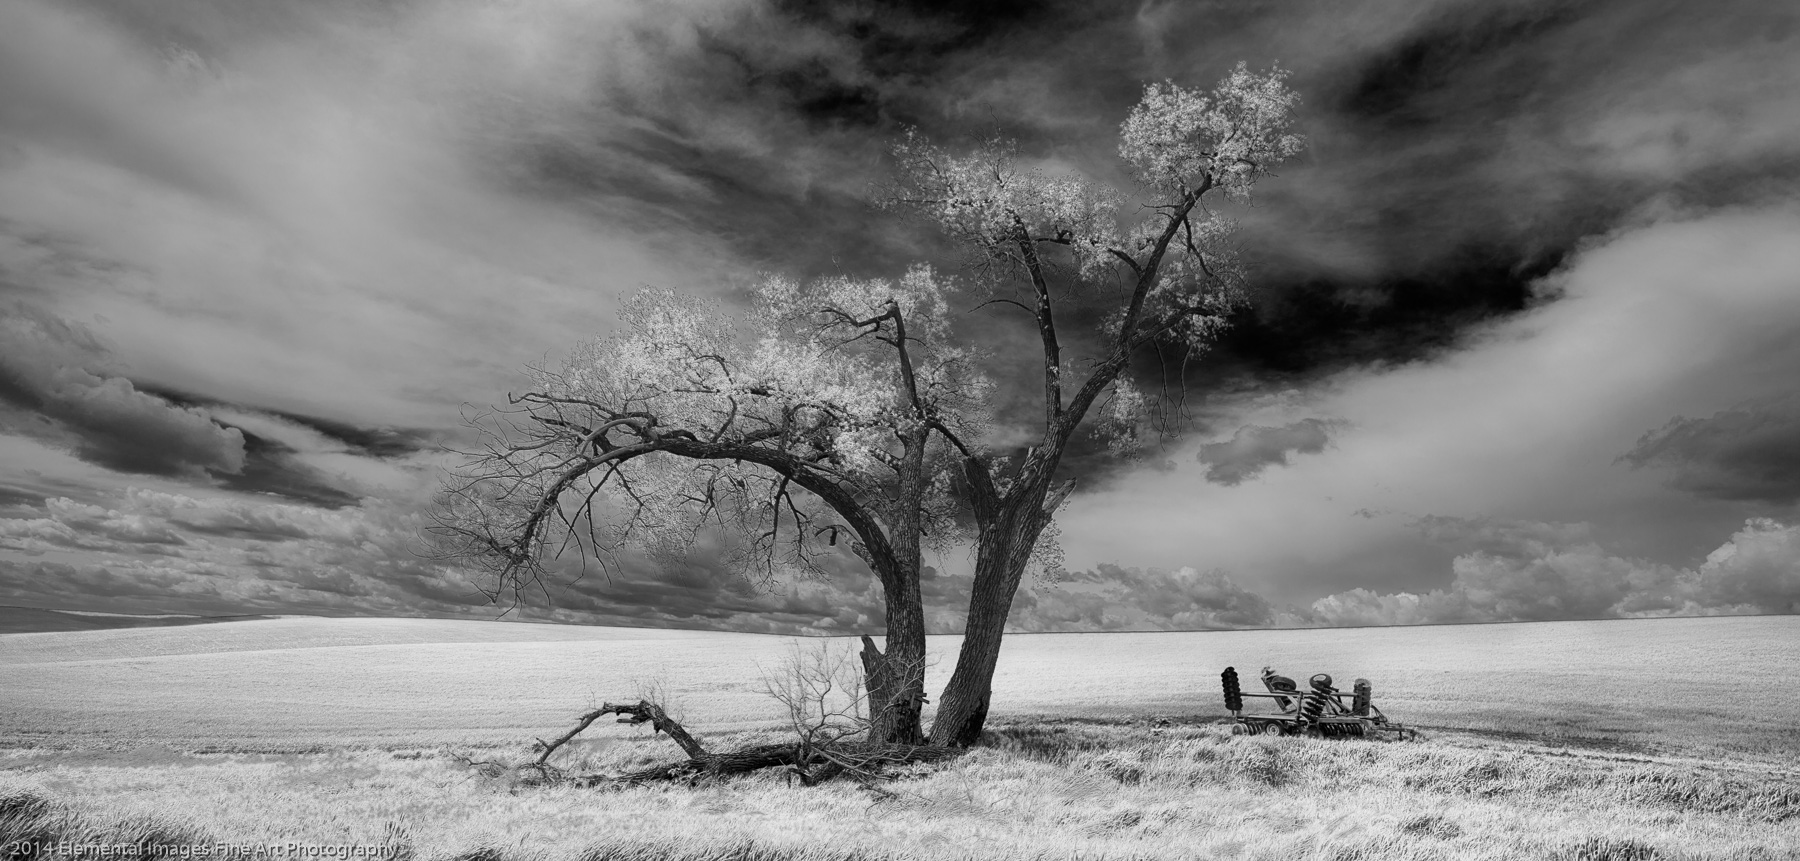 Lone Tree with Farm Equipment |  |  |  - © 2014 Elemental Images Fine Art Photography - All Rights Reserved Worldwide